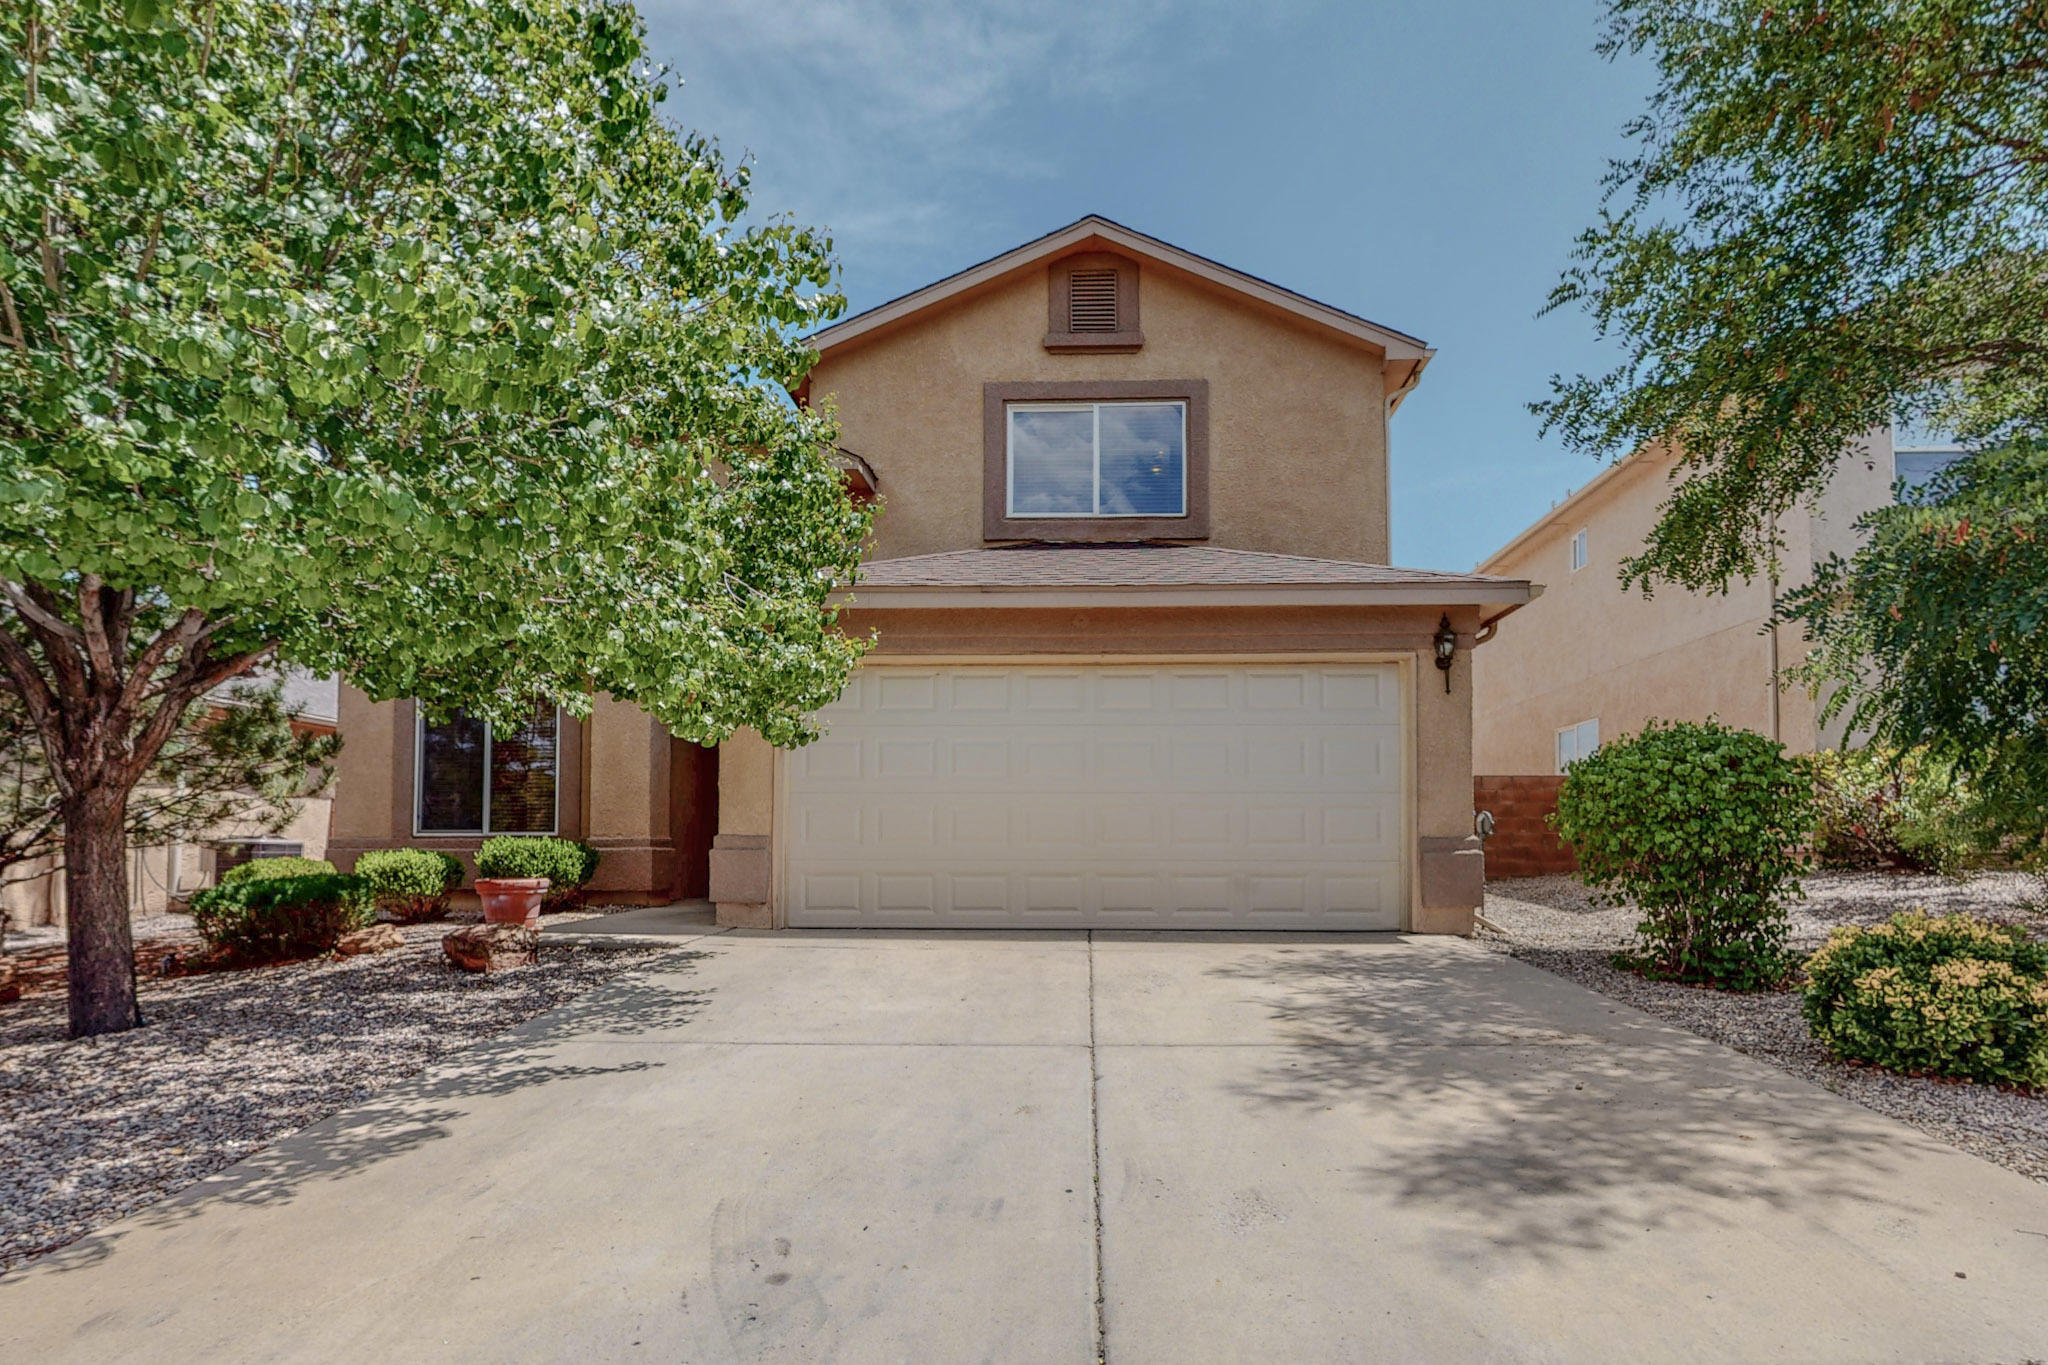 Come see this beautiful, well maintained home that shows pride of home ownership! Home has a new roof with transferable warranty, new low flow toilet in the upstairs bathroom and the master is located on the main floor. Enjoy sitting in your large back yard with friends and family for a BBQ. Or watching the sunset off your backyard balcony with a glass of wine.  Home has extra storage in the back yard that is wired with 220 for a hot tub or use as a workshop or storage. This home won't last long!